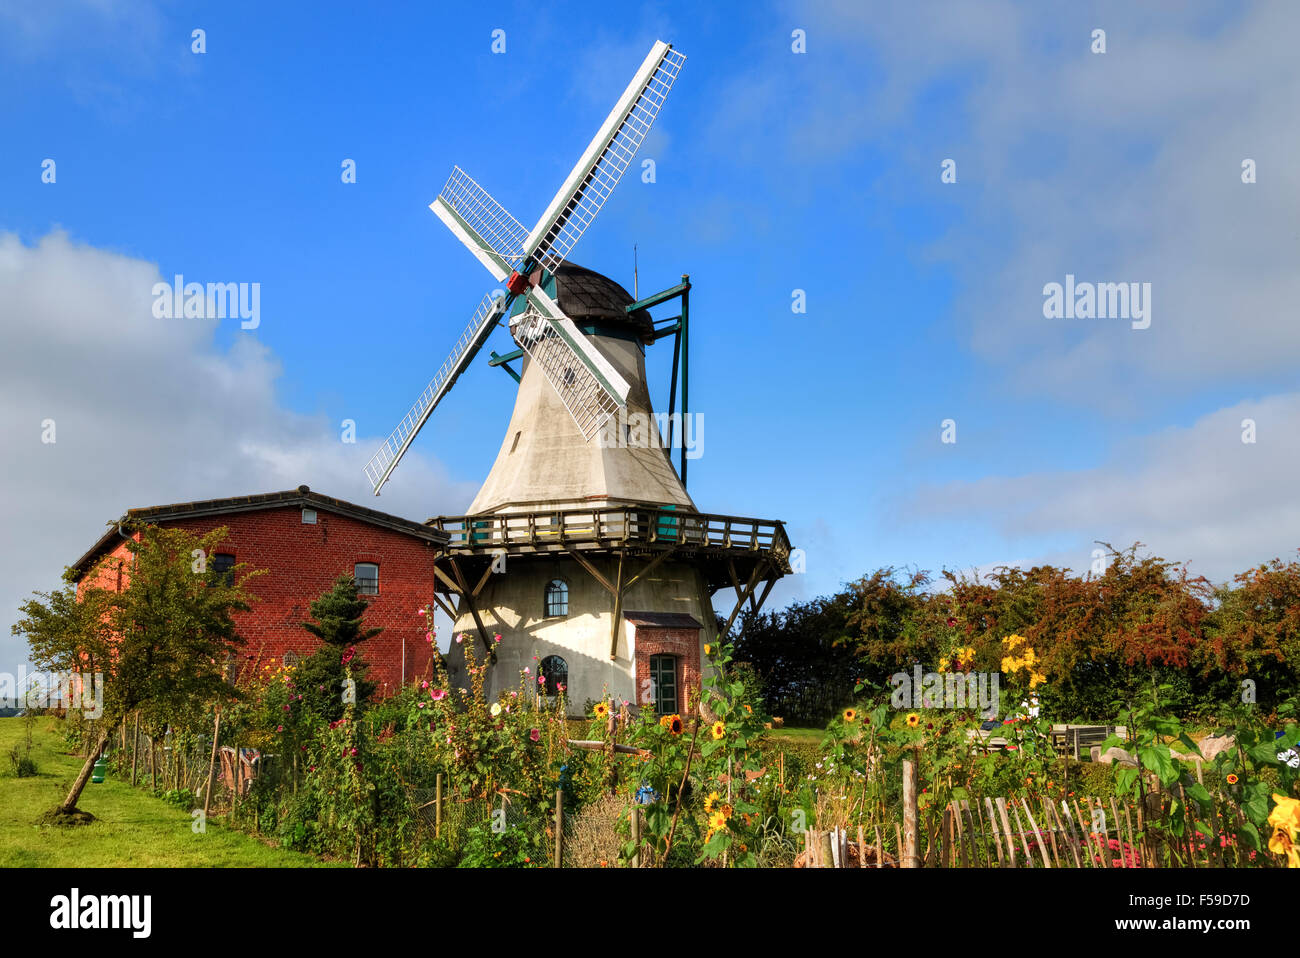 windmill Fortuna, Unewatt, Schleswig-Holstein, Germany - Stock Image